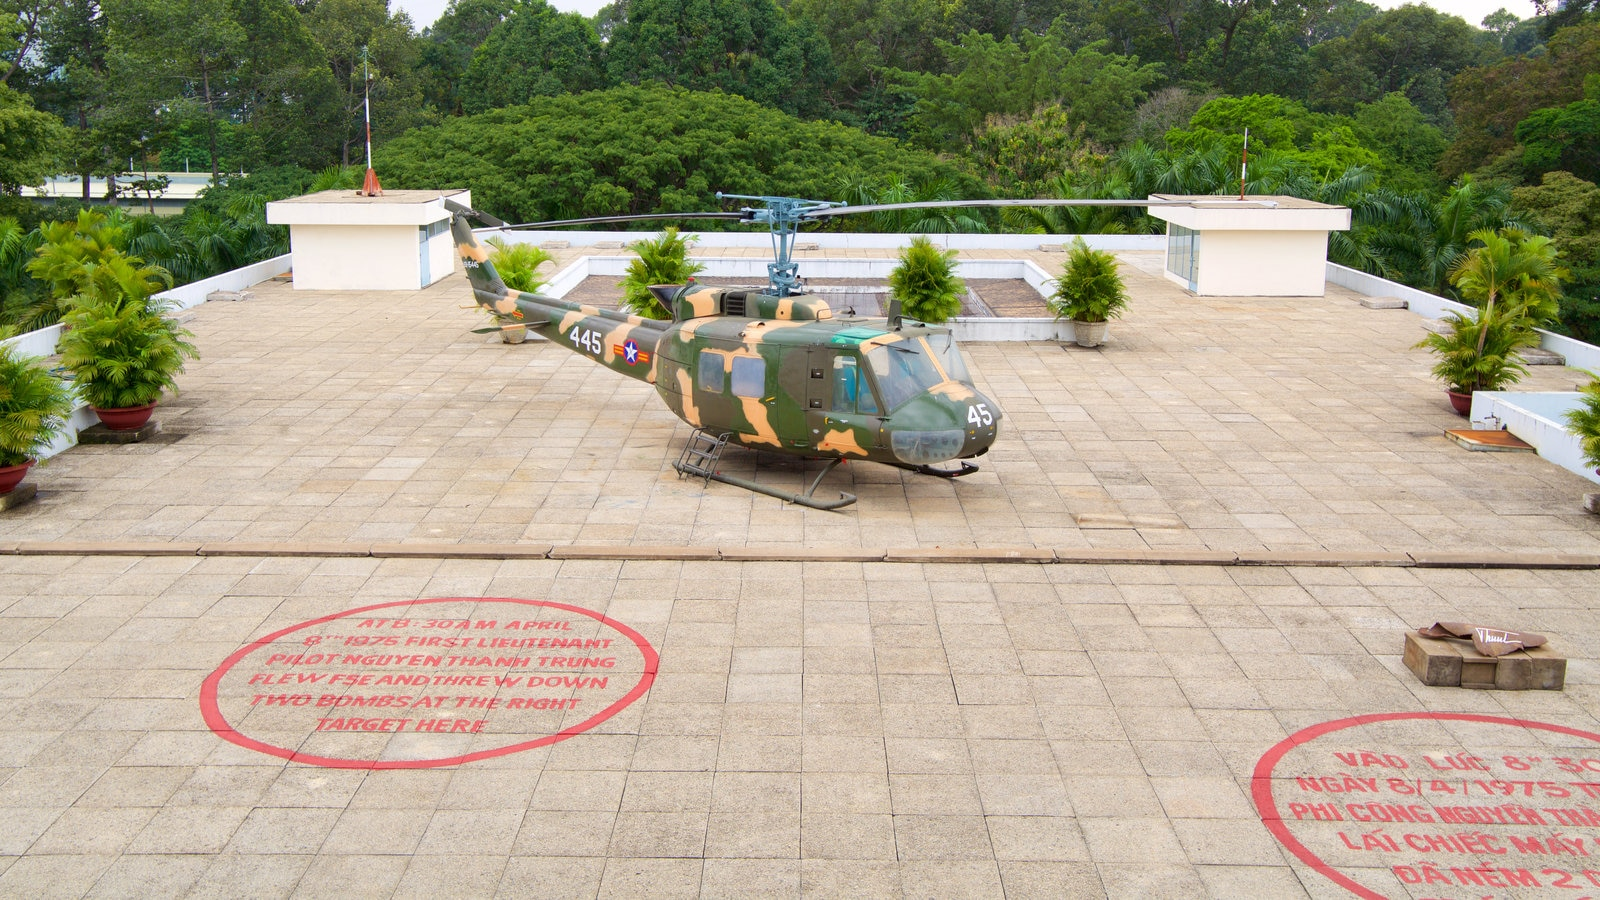 Reunification Palace which includes aircraft and military items